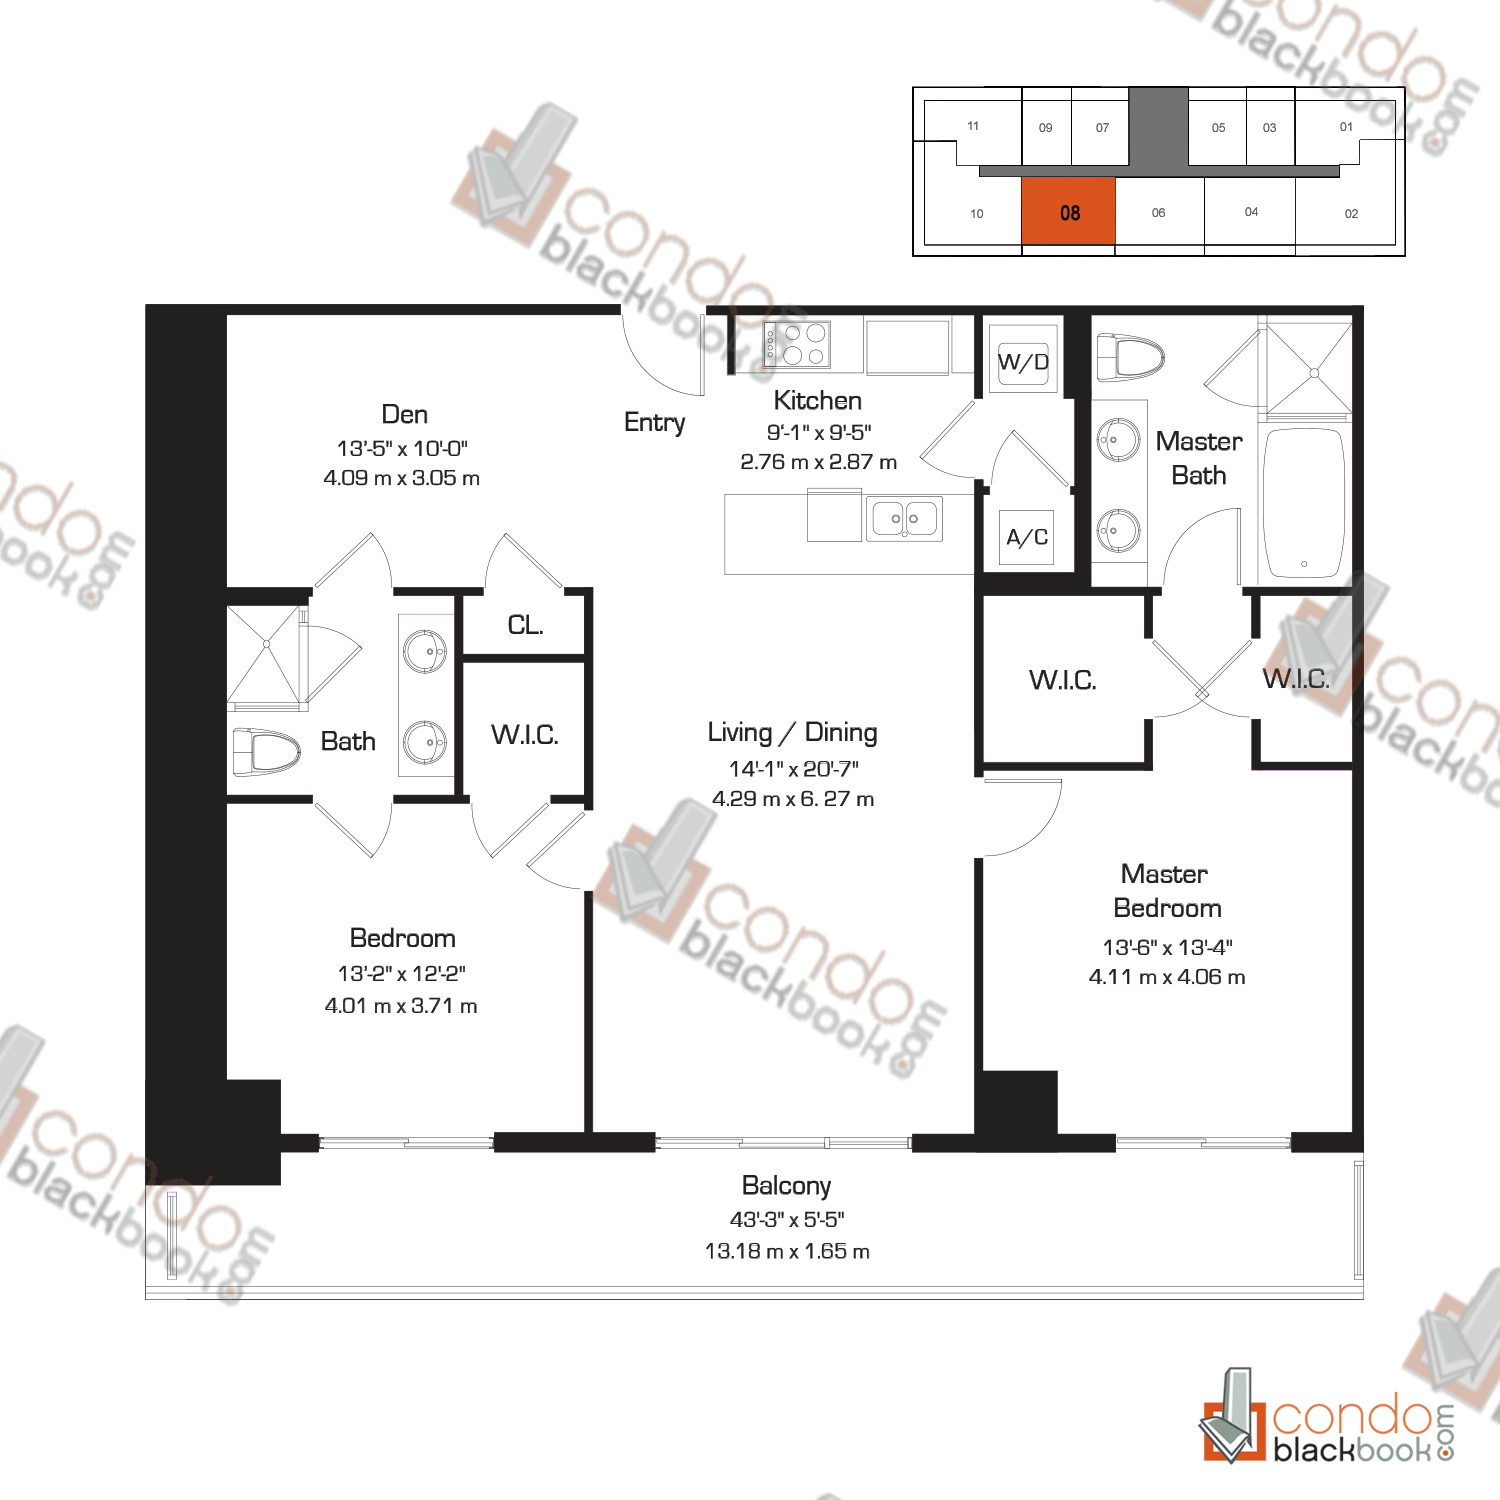 Floor plan for 50 Biscayne Downtown Miami Miami, model E, line 08, 2/2+Den bedrooms, 1,357 sq ft